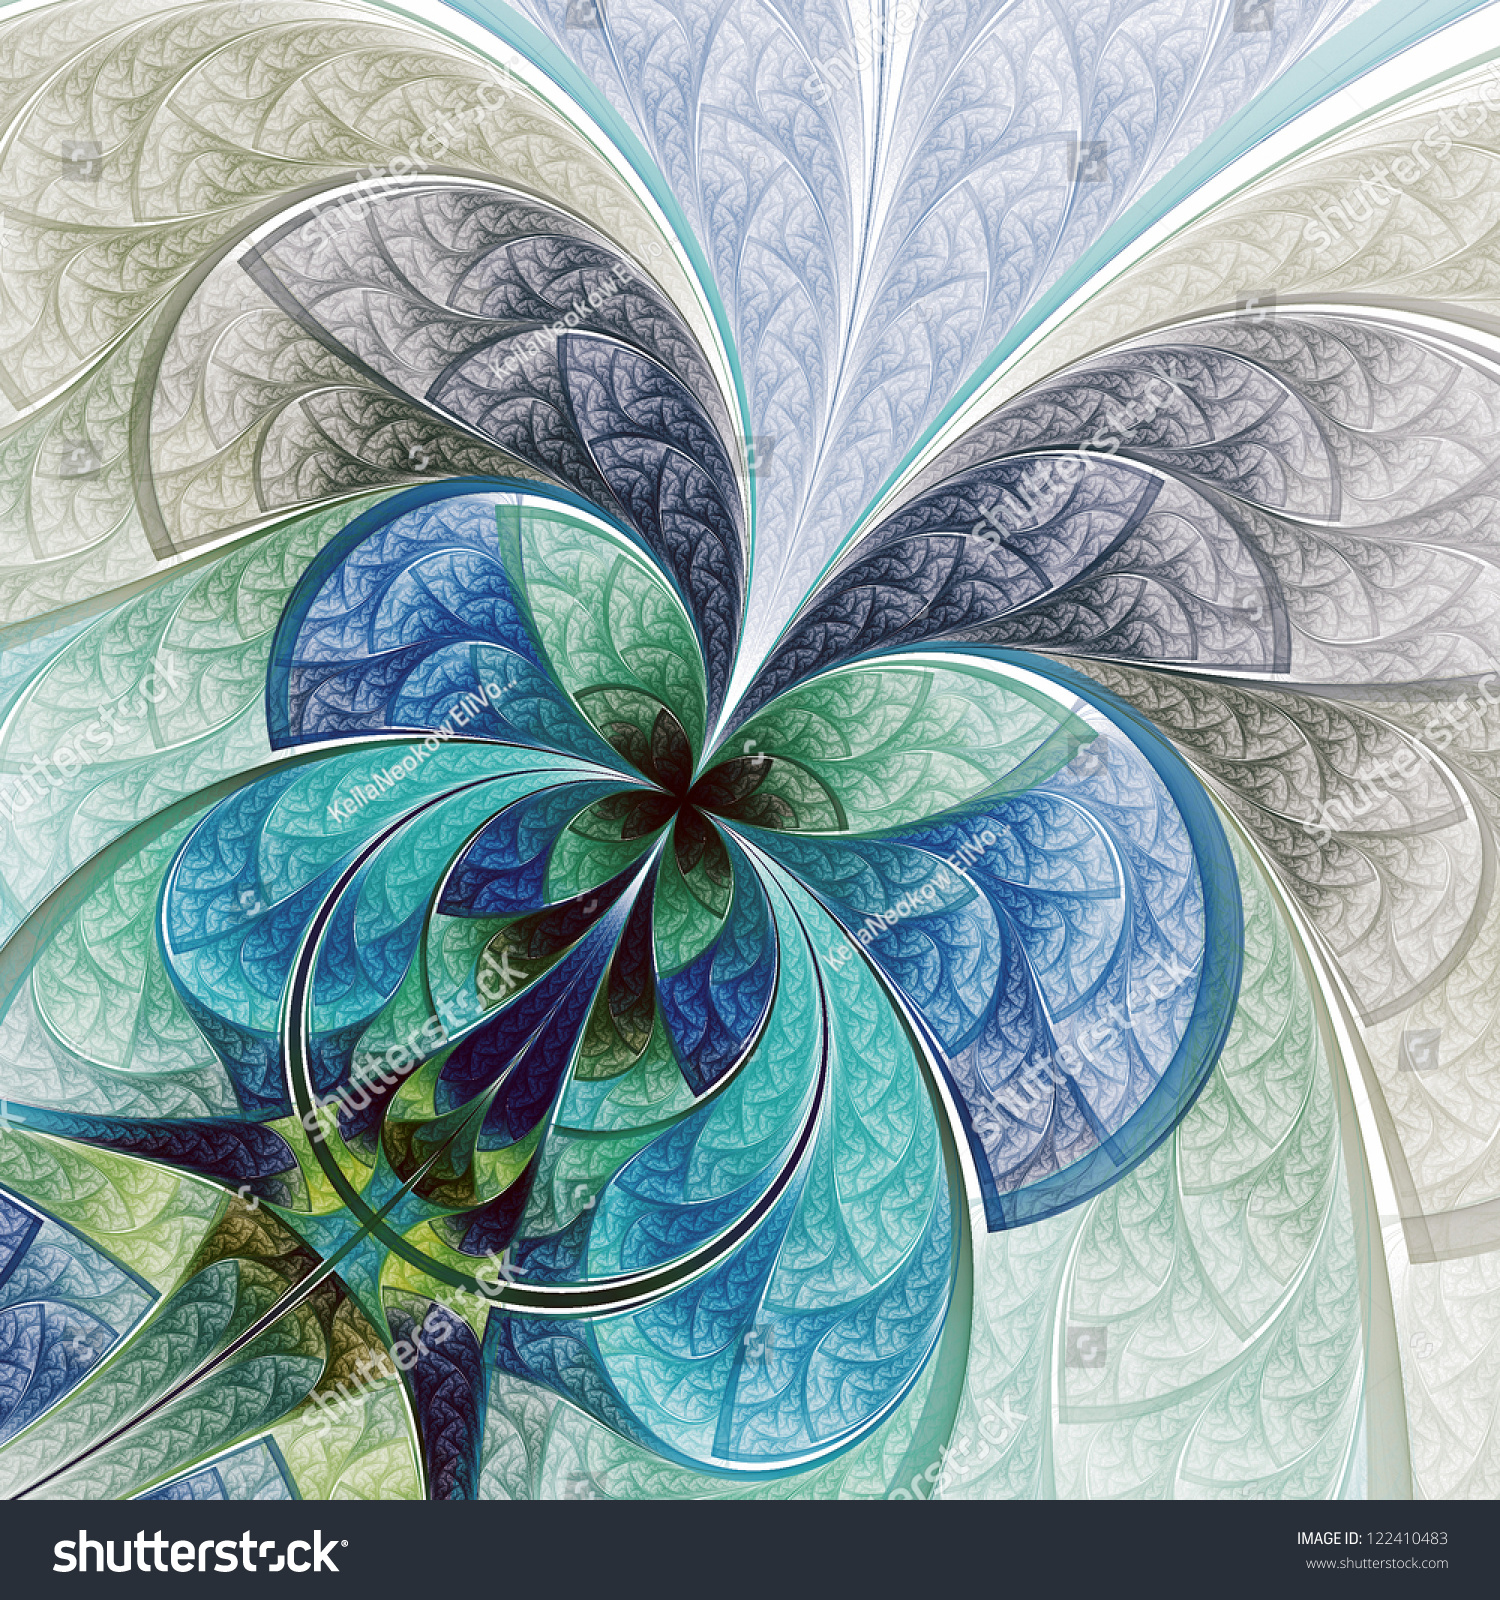 Fractal Black Flower Free Stock Photo: Colorful Abstract Flower Or Butterfly, Digital Fractal Art